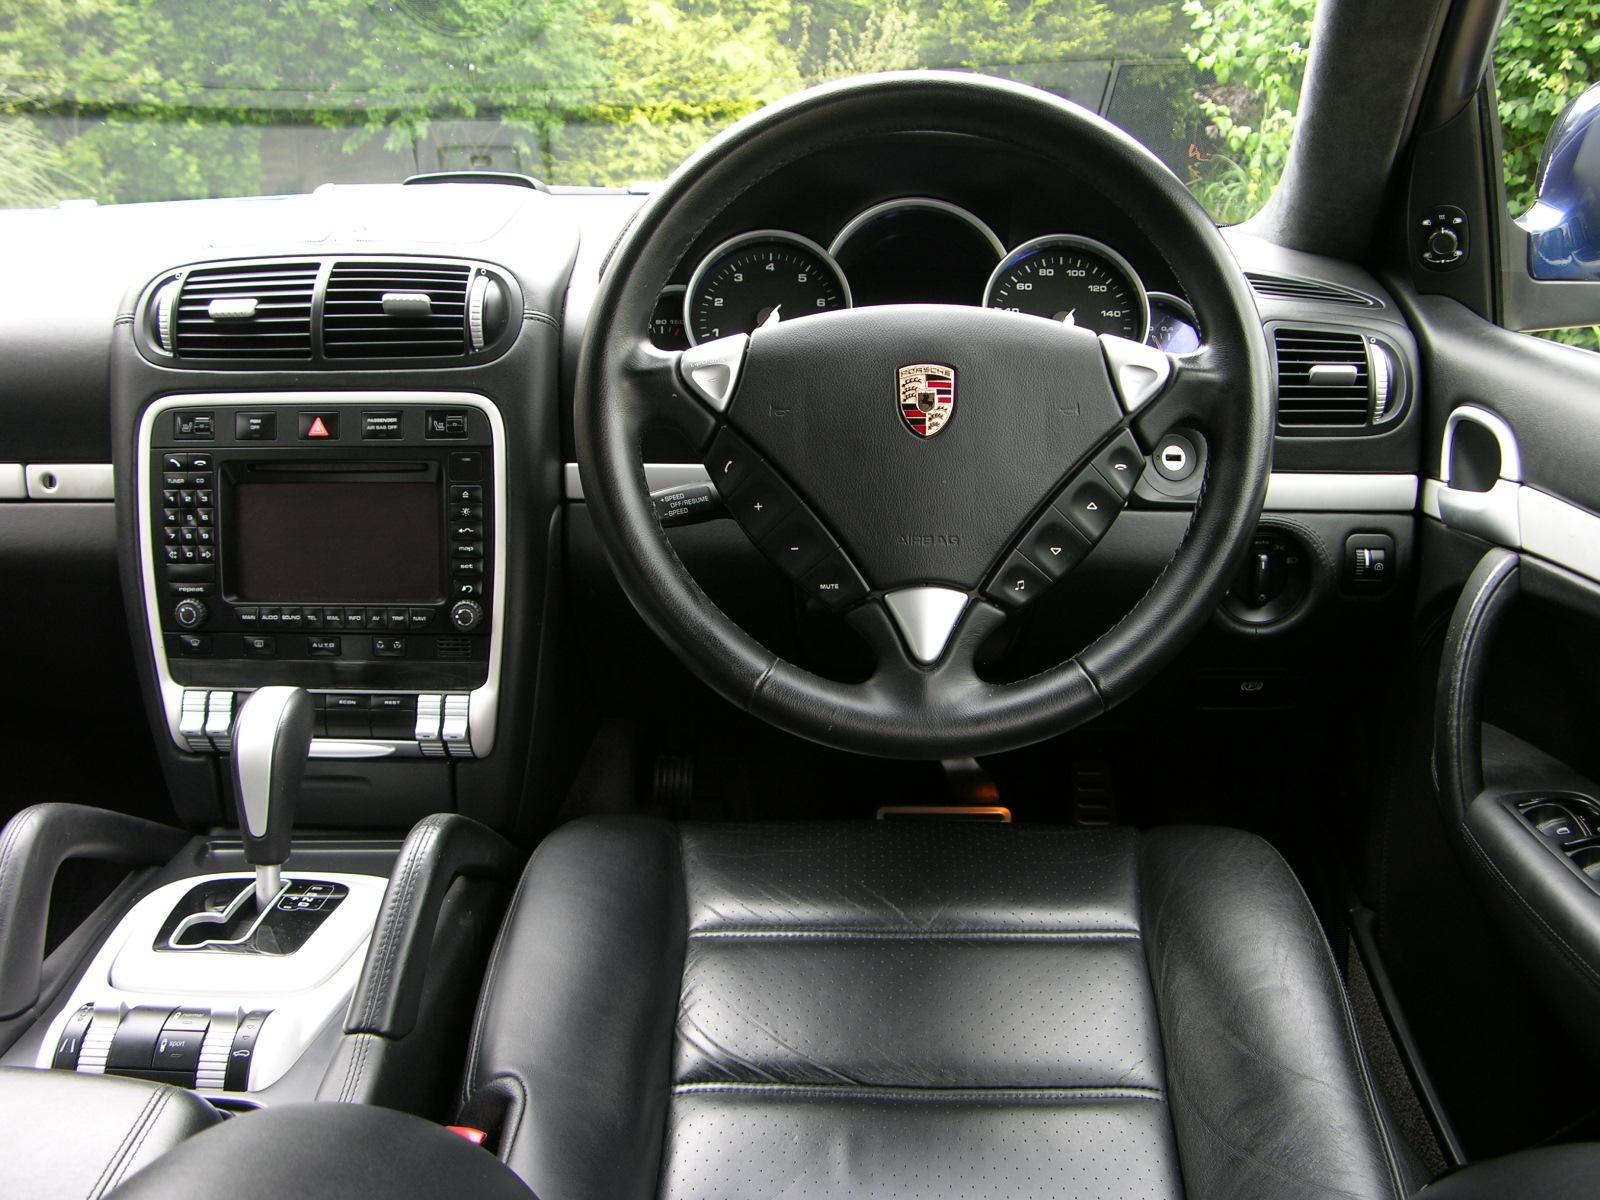 file 2006 porsche cayenne 4 5 turbo s flickr the car spy 5 jpg wikimedia commons. Black Bedroom Furniture Sets. Home Design Ideas